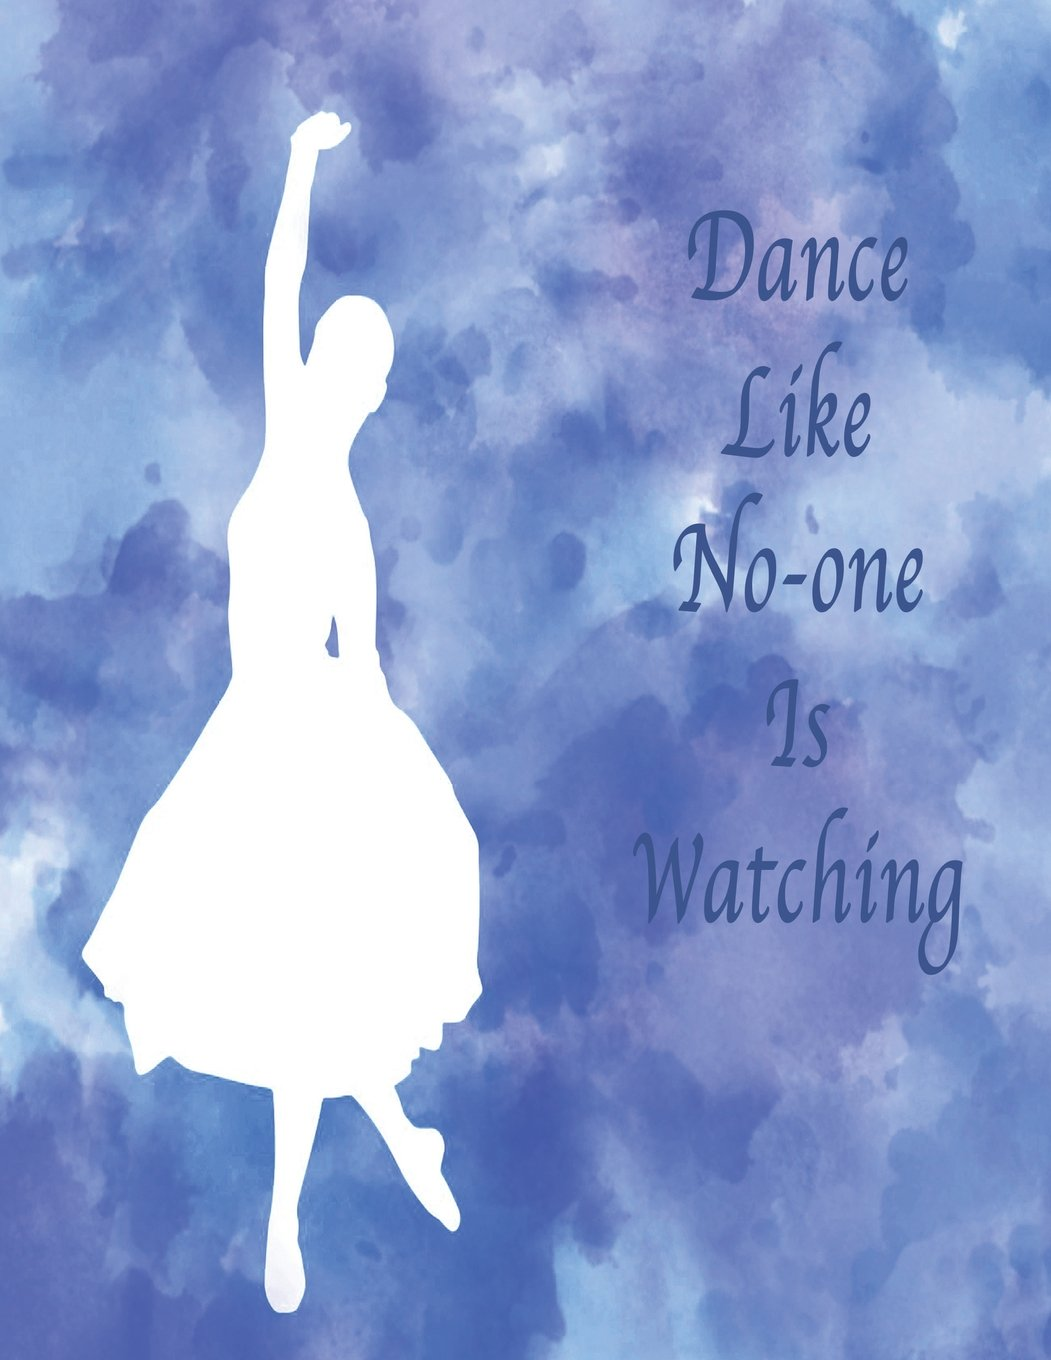 Dance Like No-One Is Watching: Dot Grid Journal Notebook, Soft cover, Blue, 110 pages 8.5x11, Inspirational Quote PDF